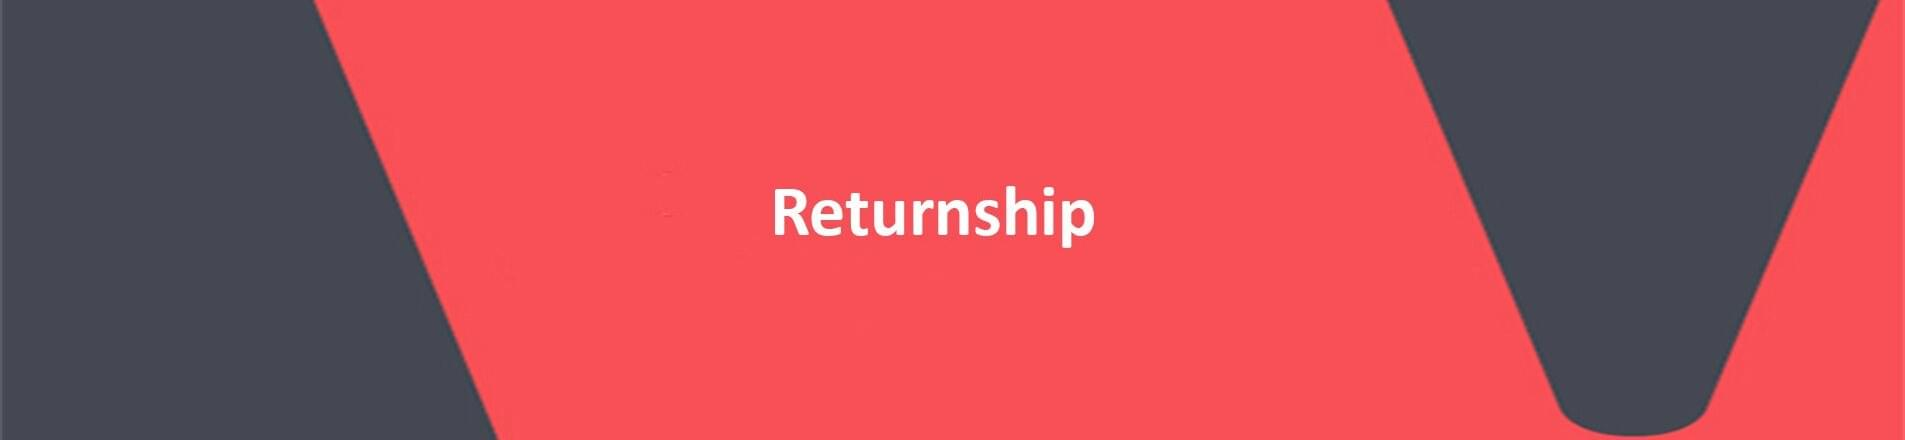 Red background with text overlaid spelling Returnship.